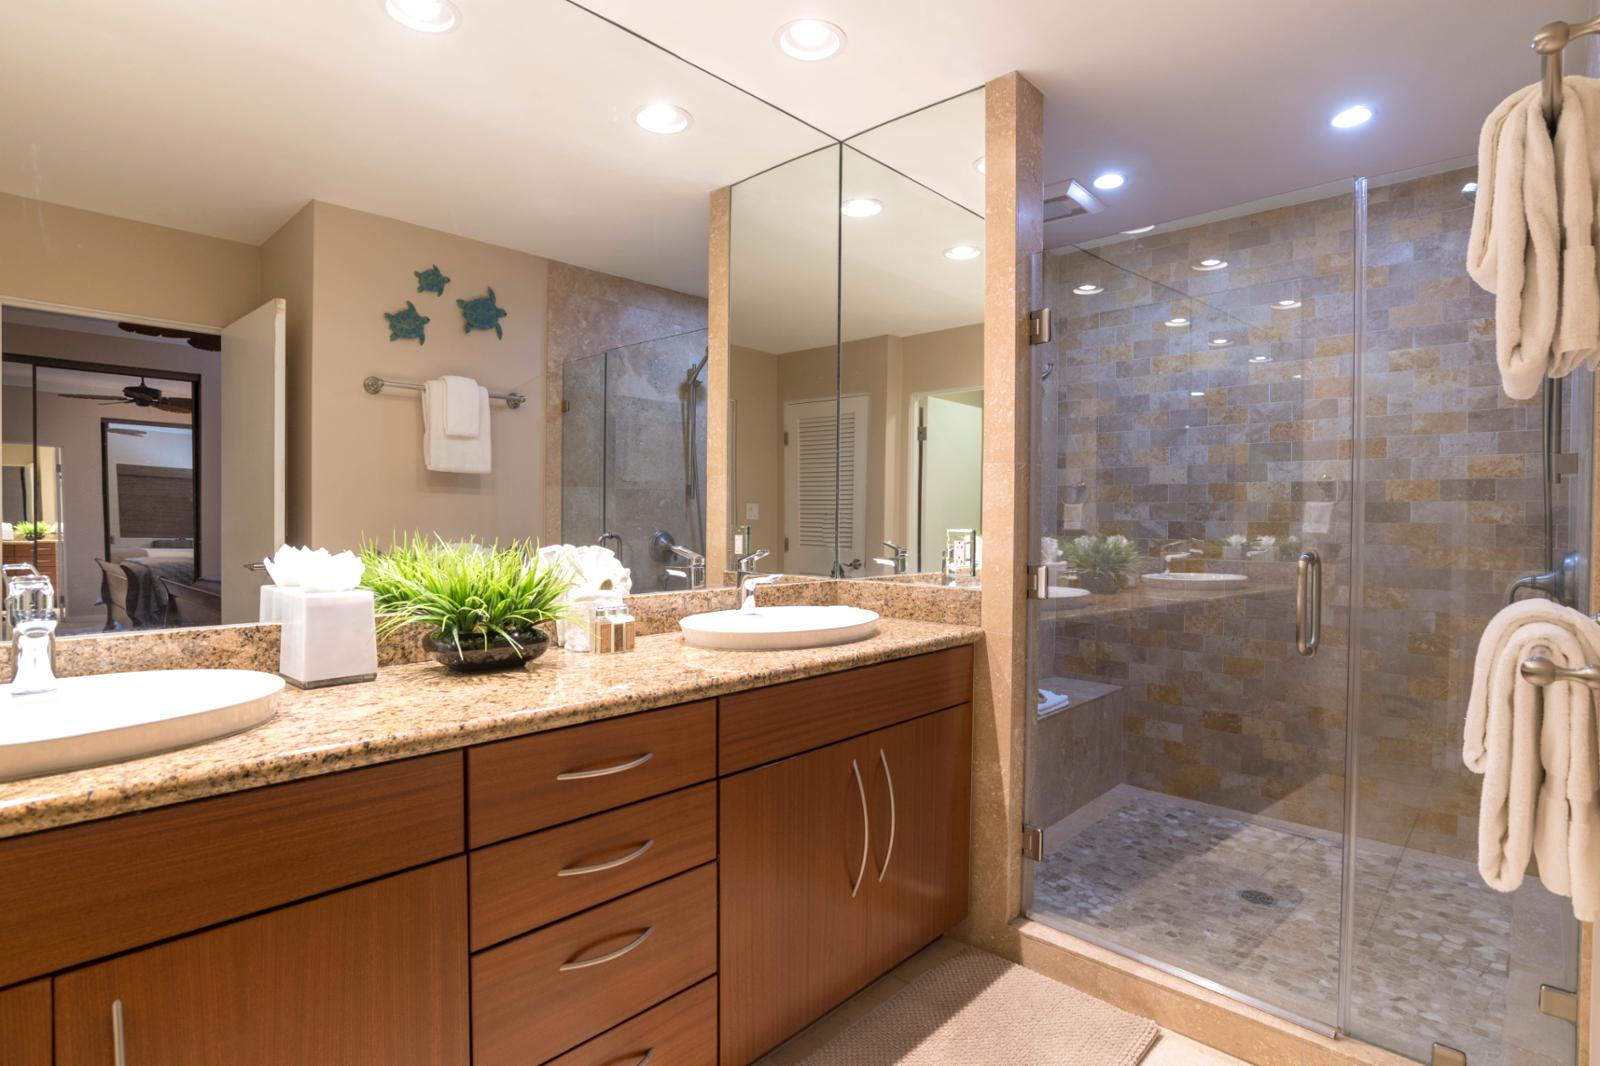 Remastered dual sinks with upgraded walk in shower, glass enclosed floor to ceiling